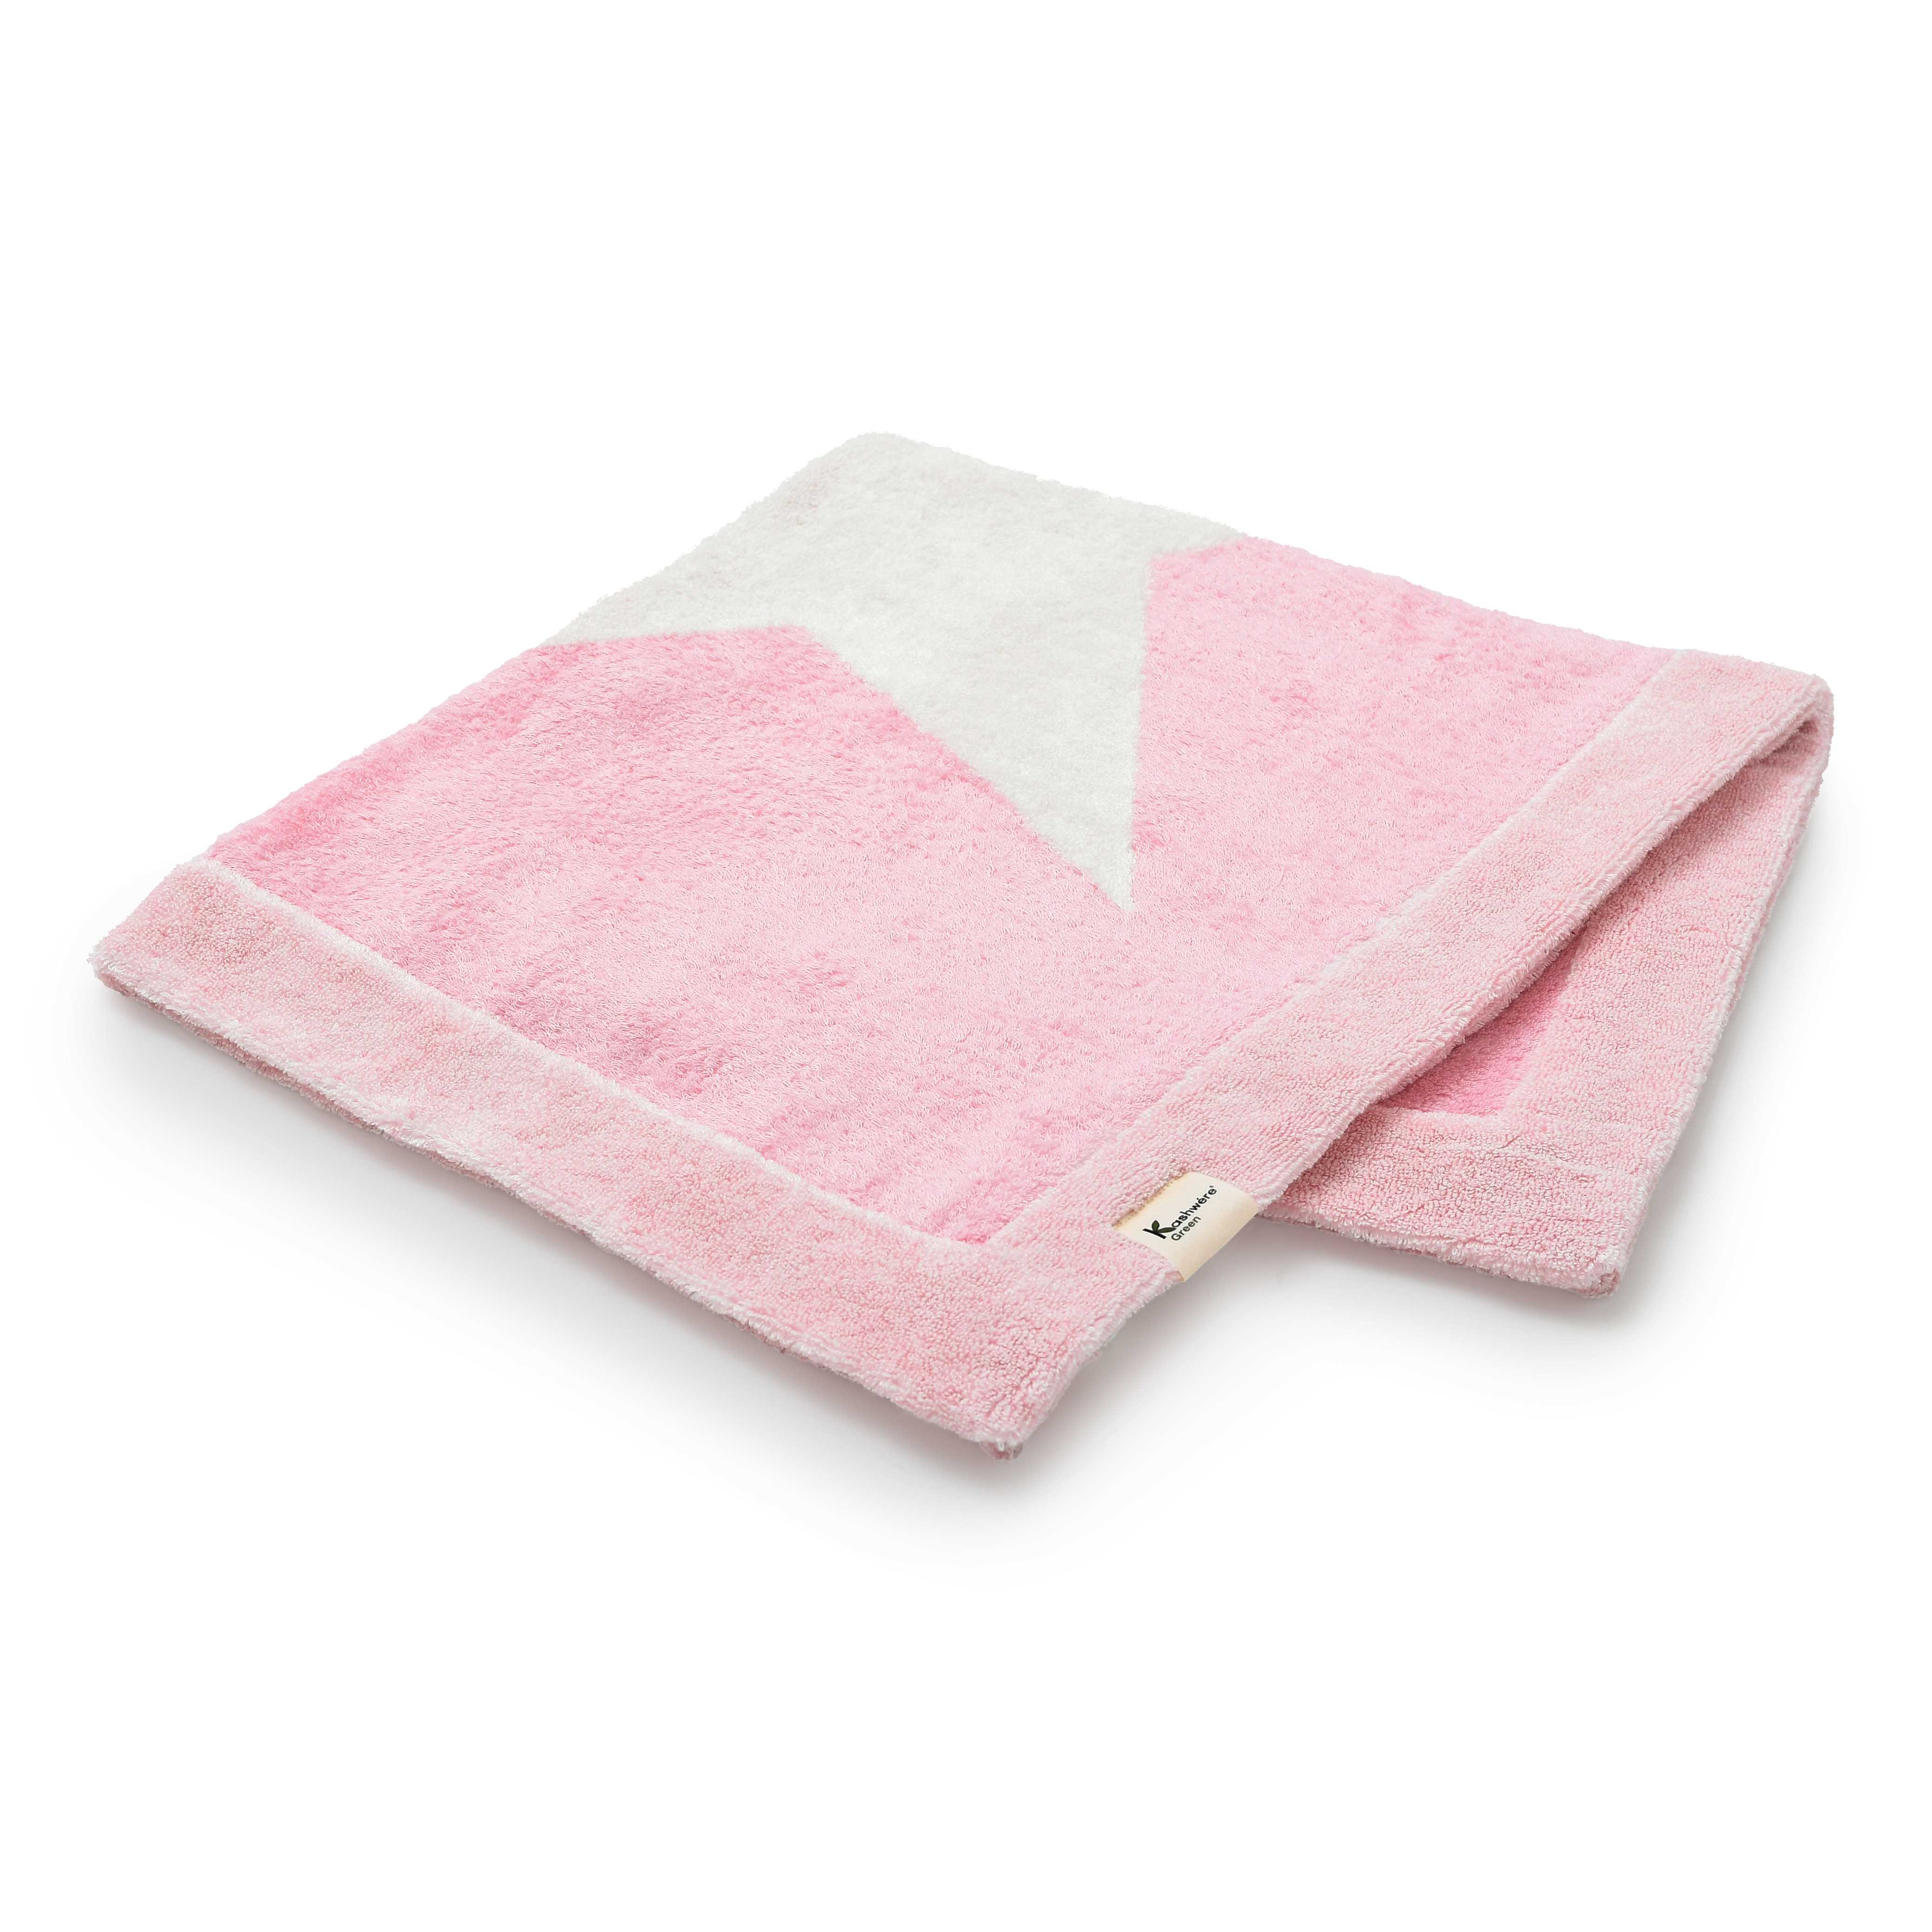 BABY BLANKET (TOWEL)